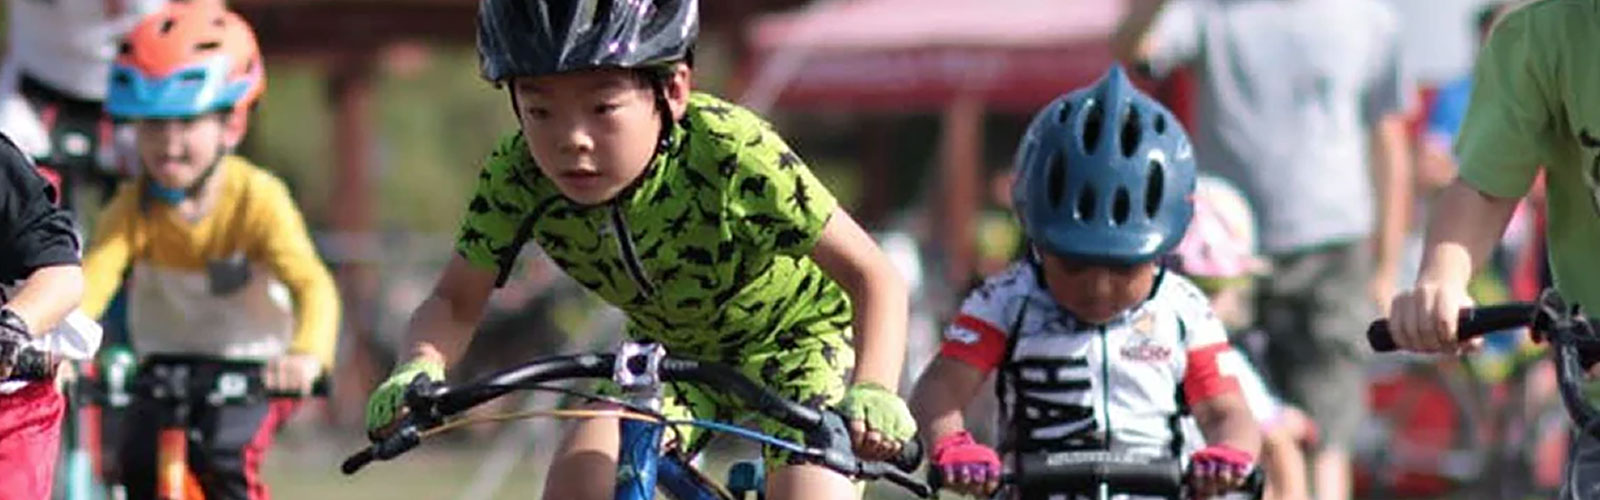 Children's Youth Size Cycling Apparel and Gear